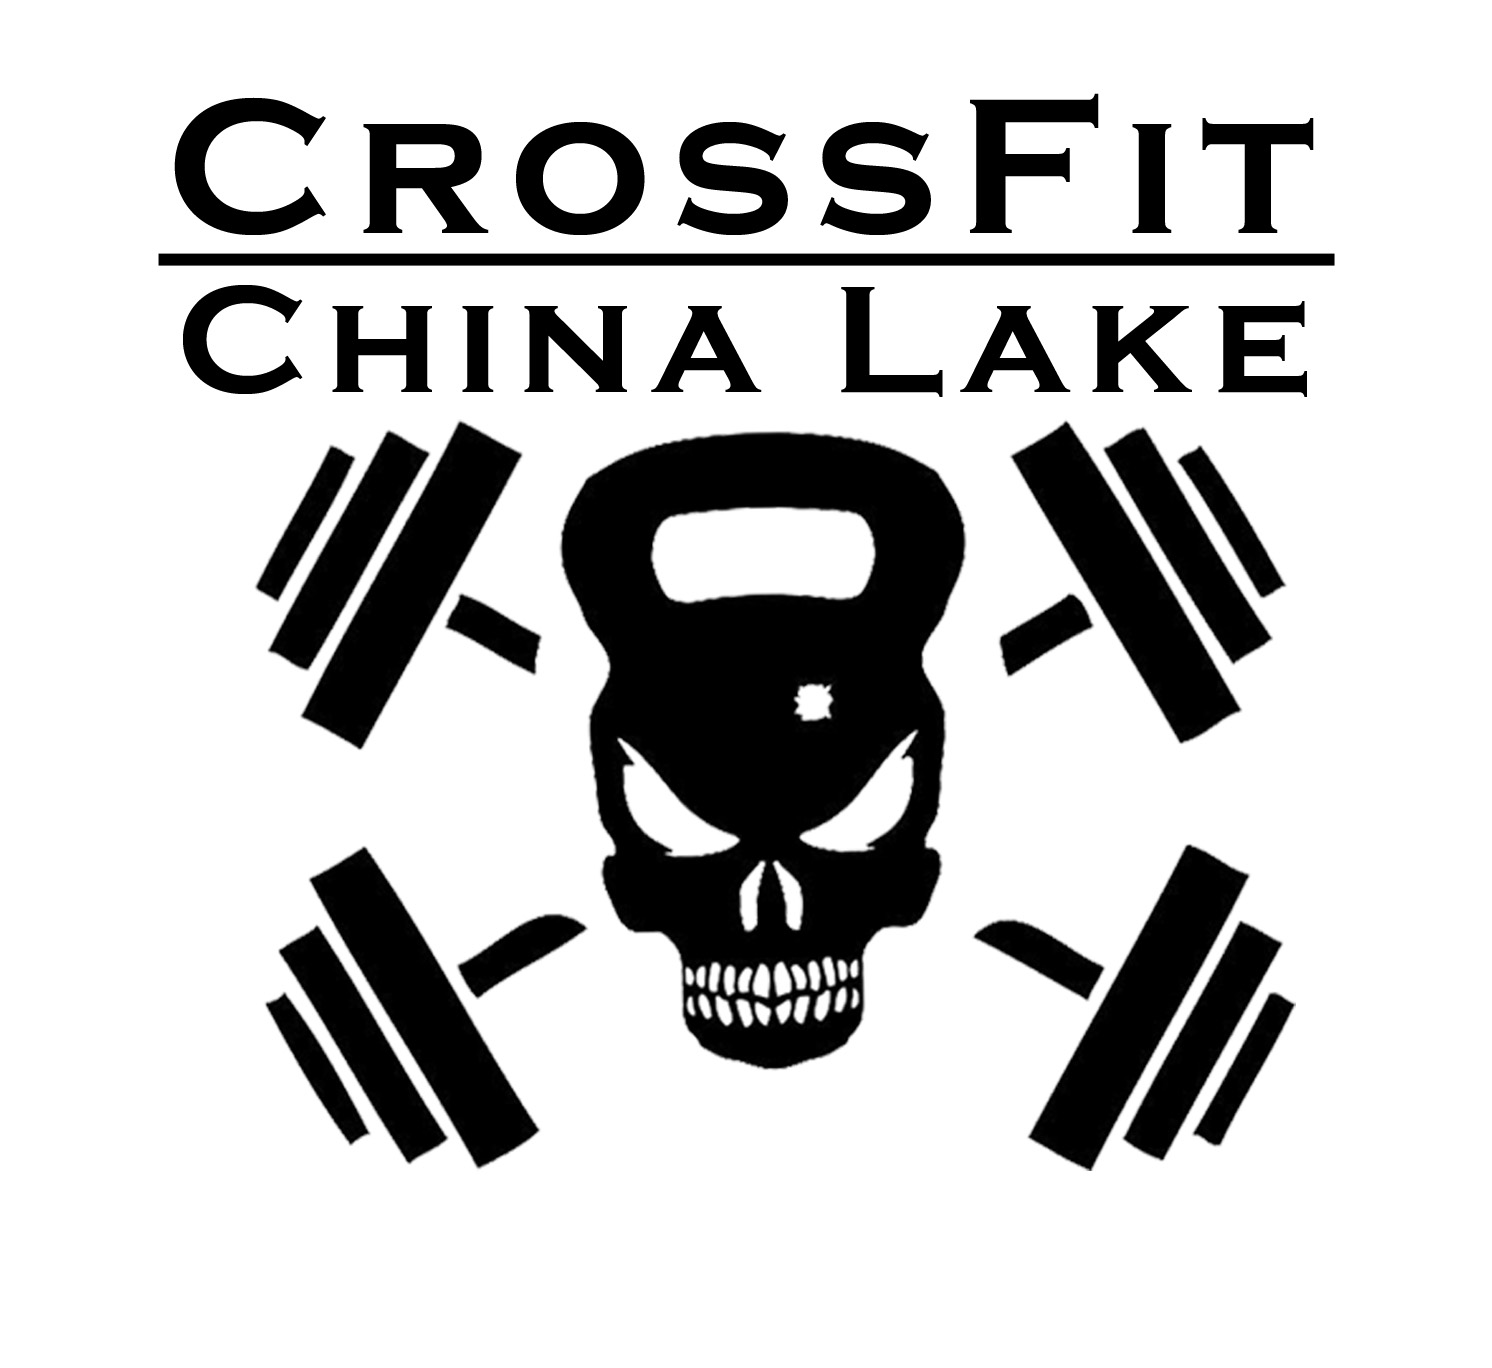 CrossFit China Lake logo